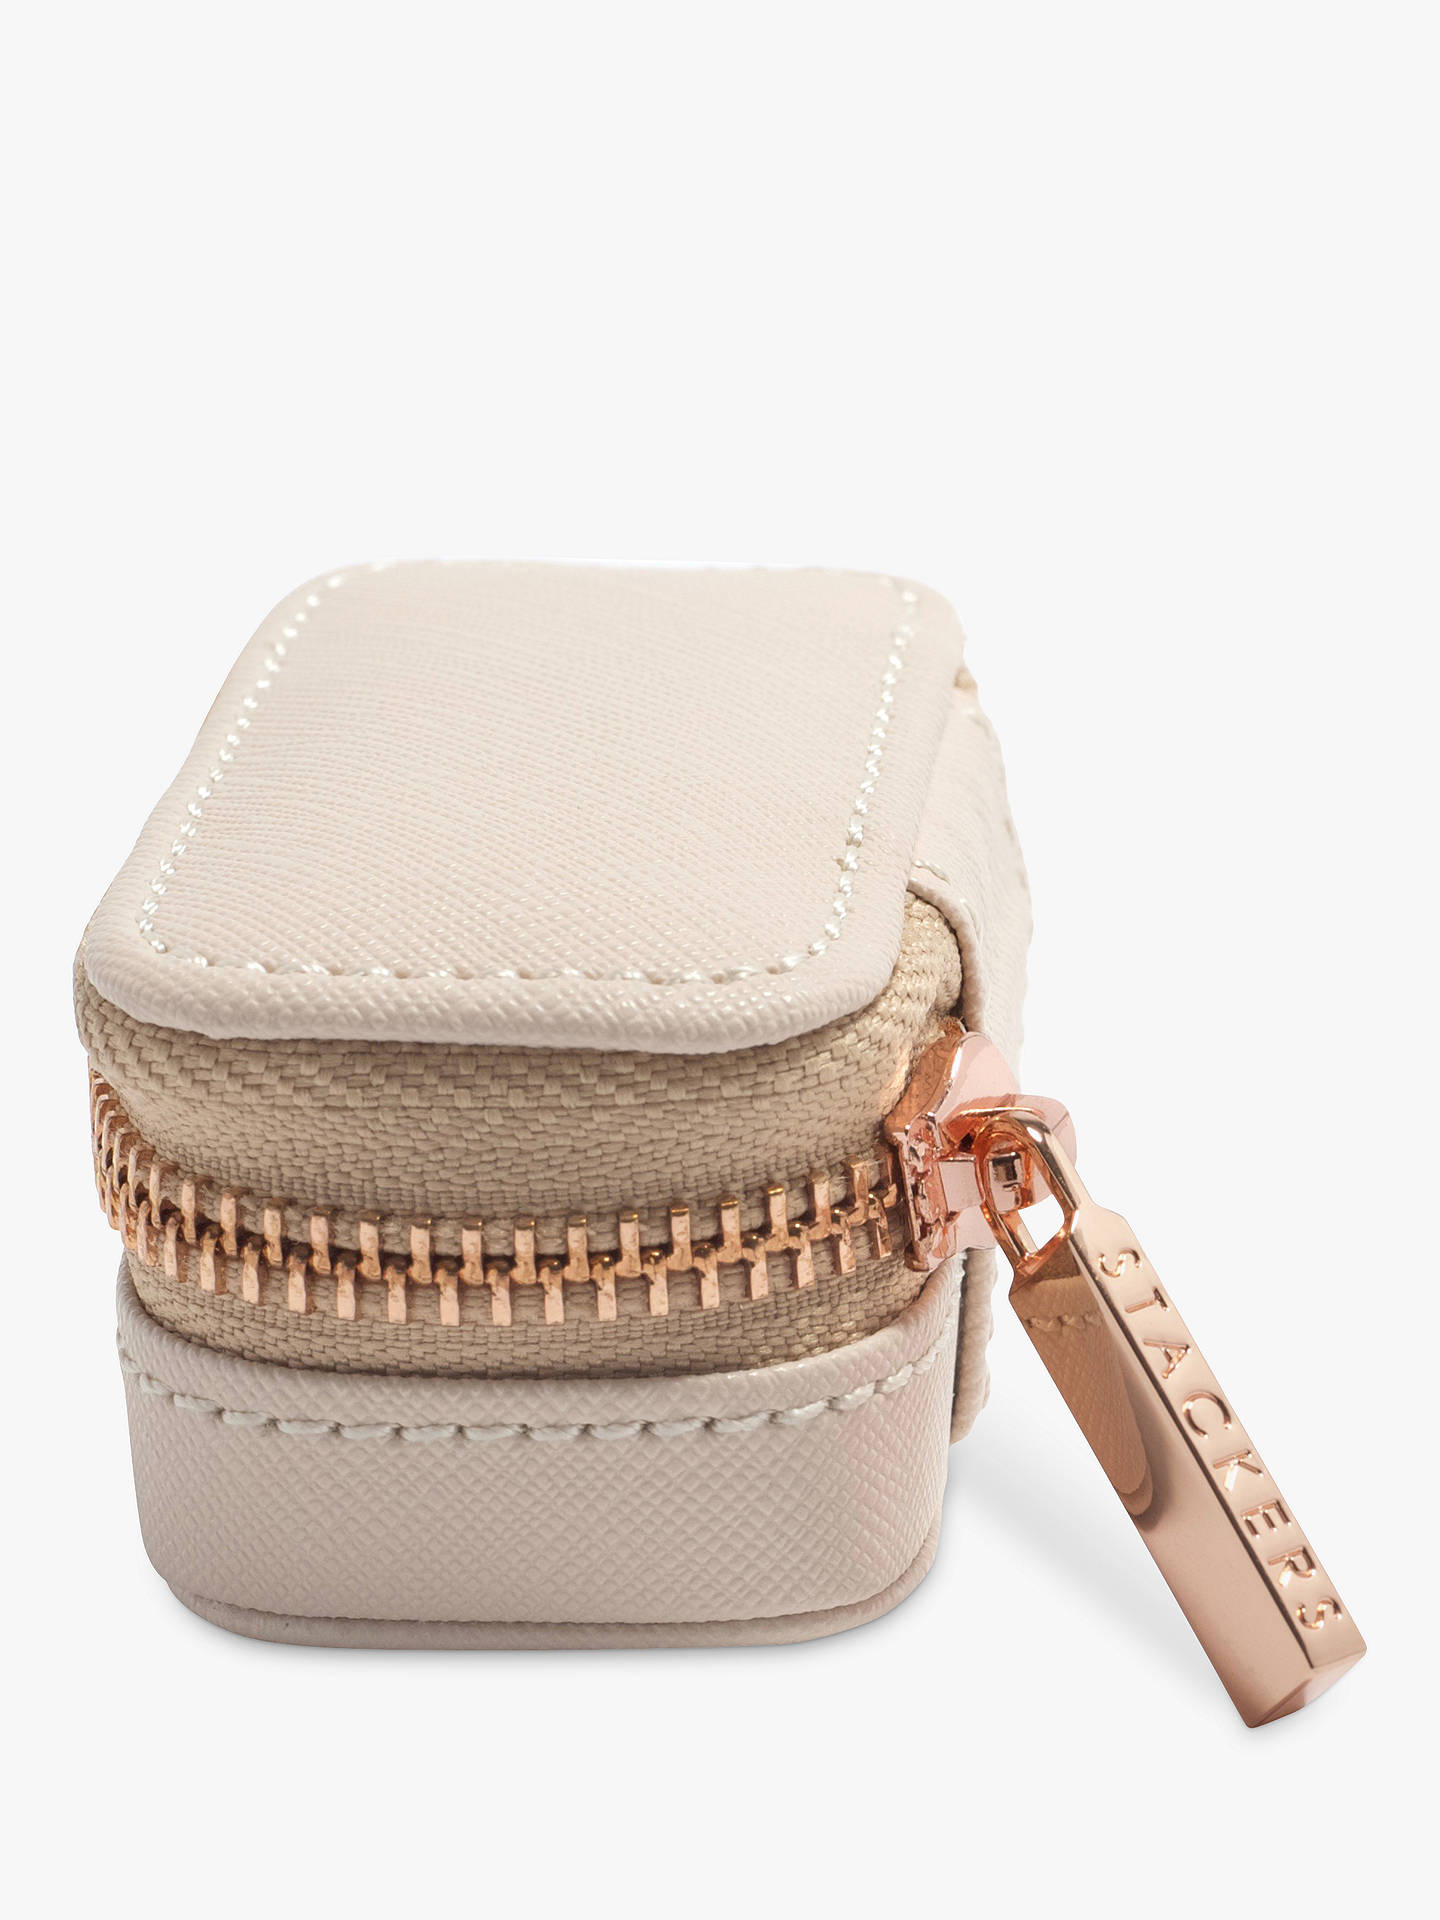 BuyStackers Petite Travel Jewellery Box, Blush Pink Online at johnlewis.com